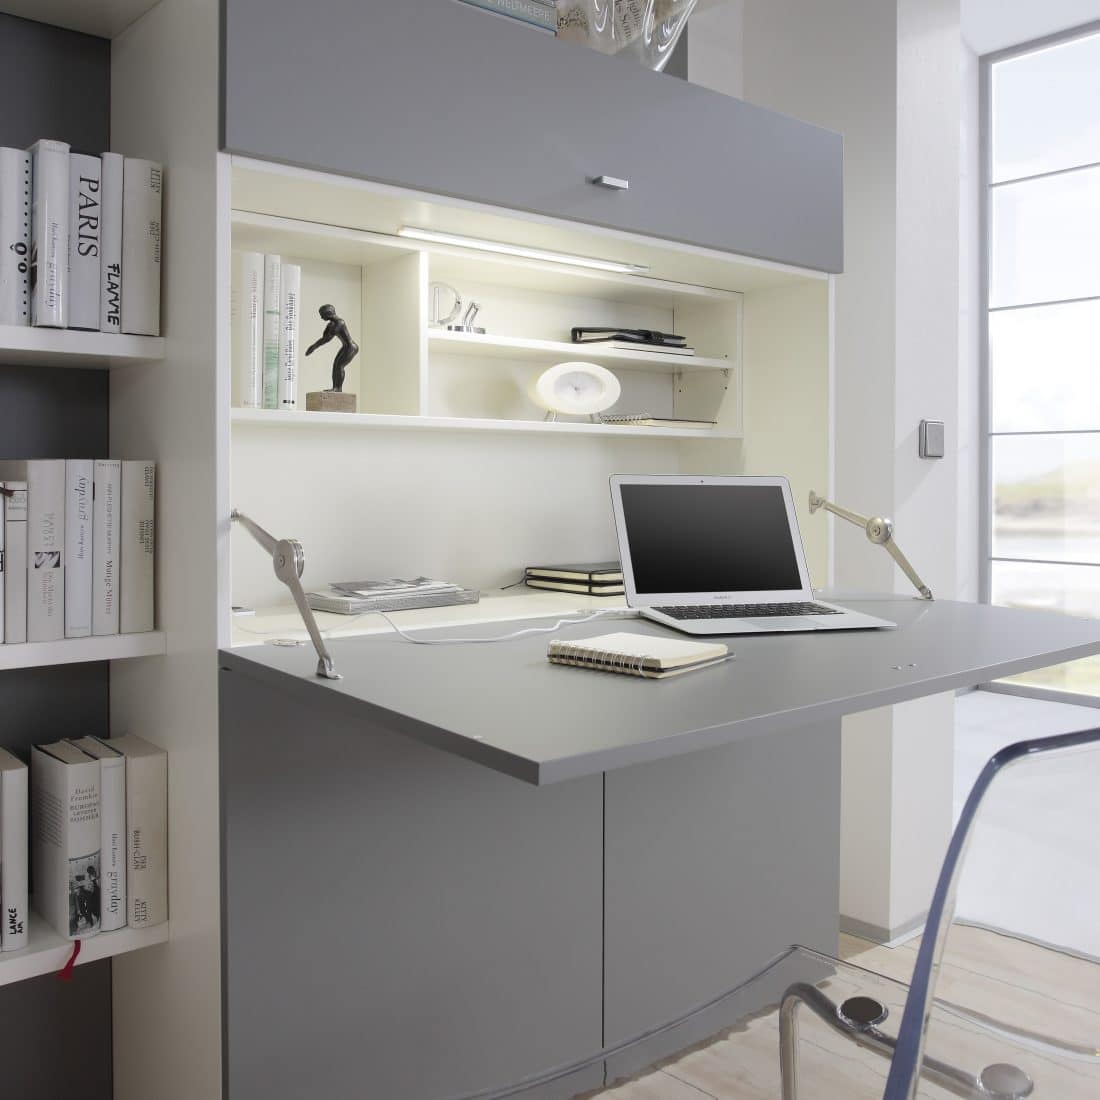 Collapsible desk Space with a fold-out desk provides a neat and tidy workplace. Ideal for working from home in a small space